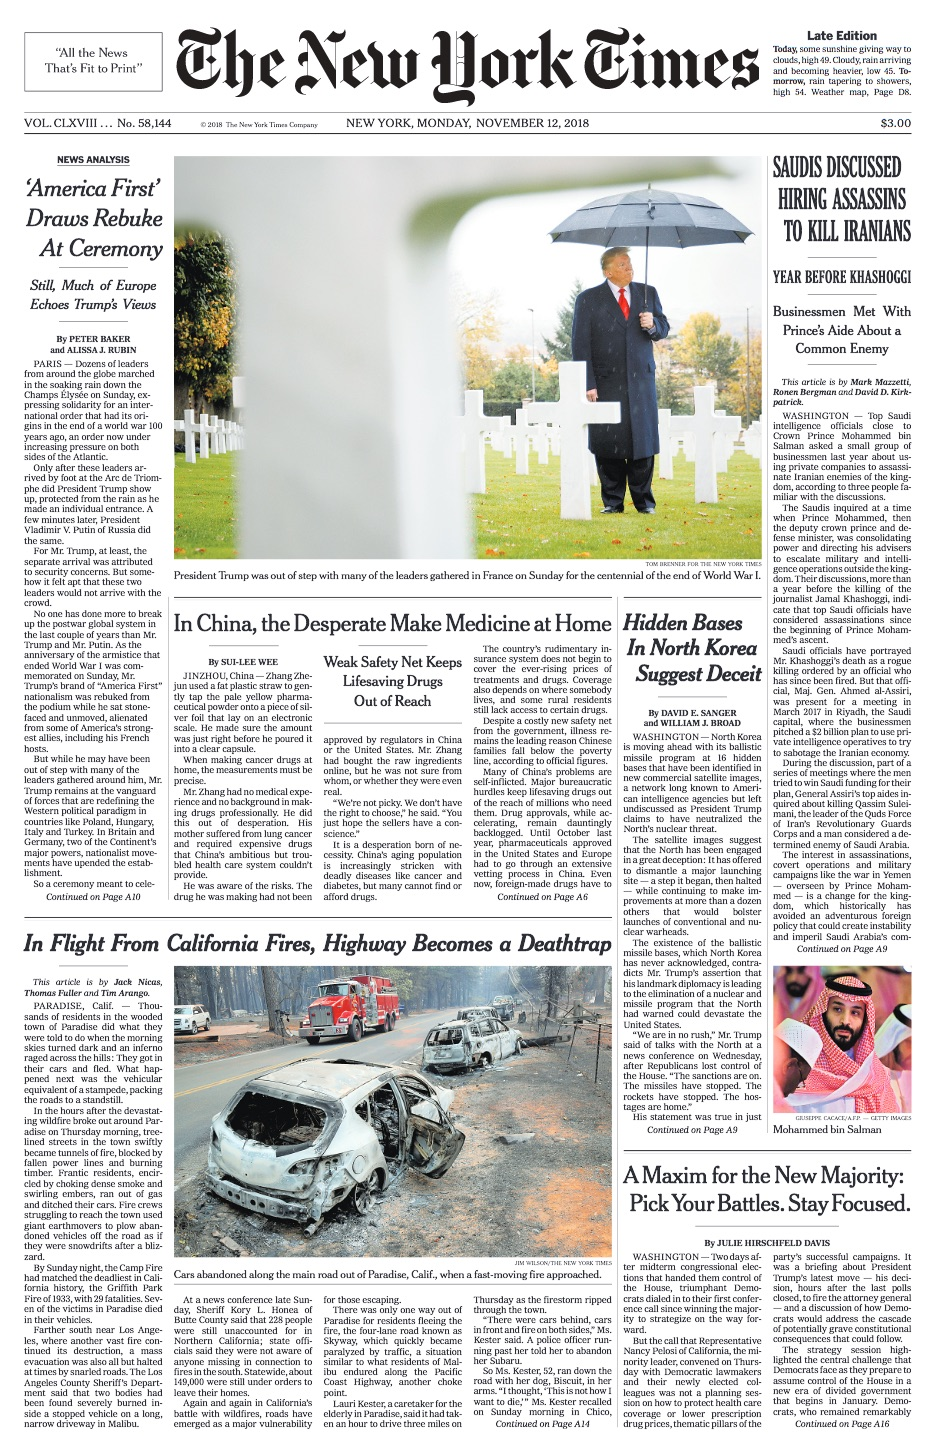 NYT_FrontPage_111218.jpg